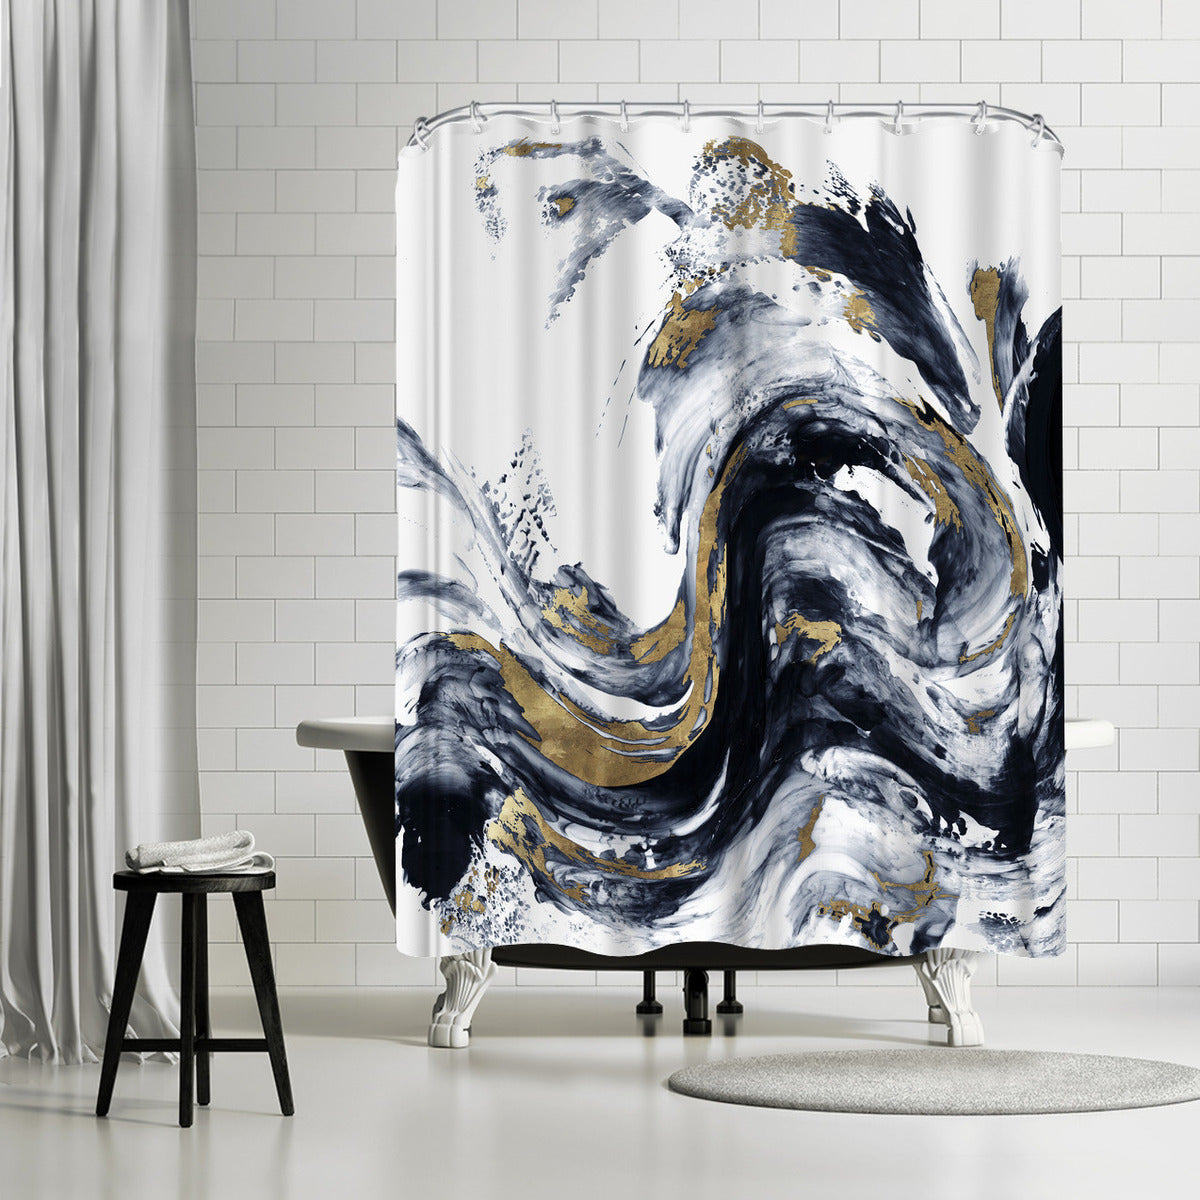 Faded Memories I by PI Creative Art Shower Curtain - Americanflat